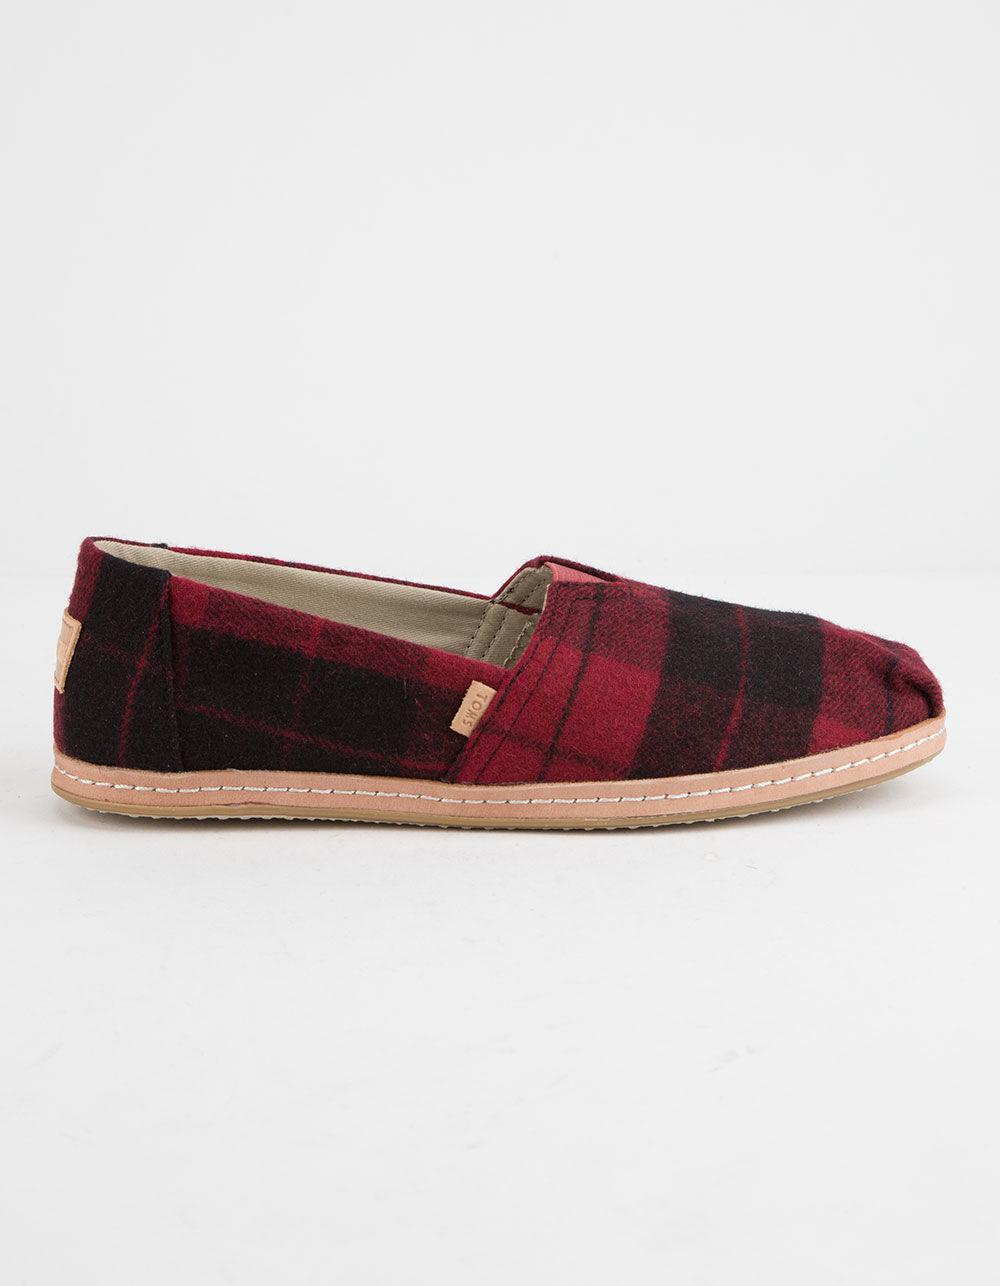 380660b0656 Lyst - TOMS Felt Plaid Womens Classic Slip-on Shoes in Red